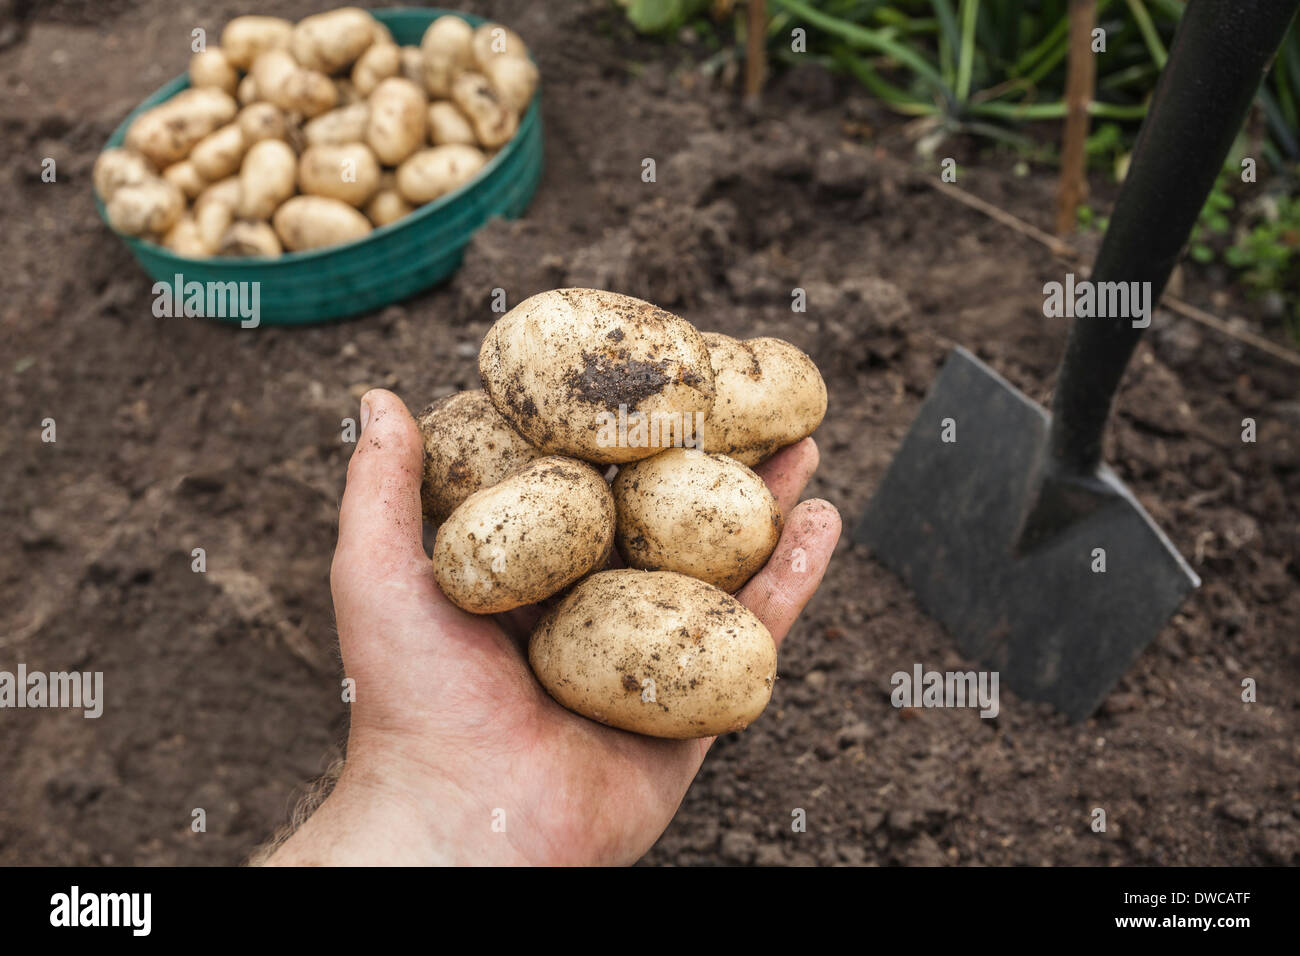 Mature man holding potatoes harvested from garden Stock Photo